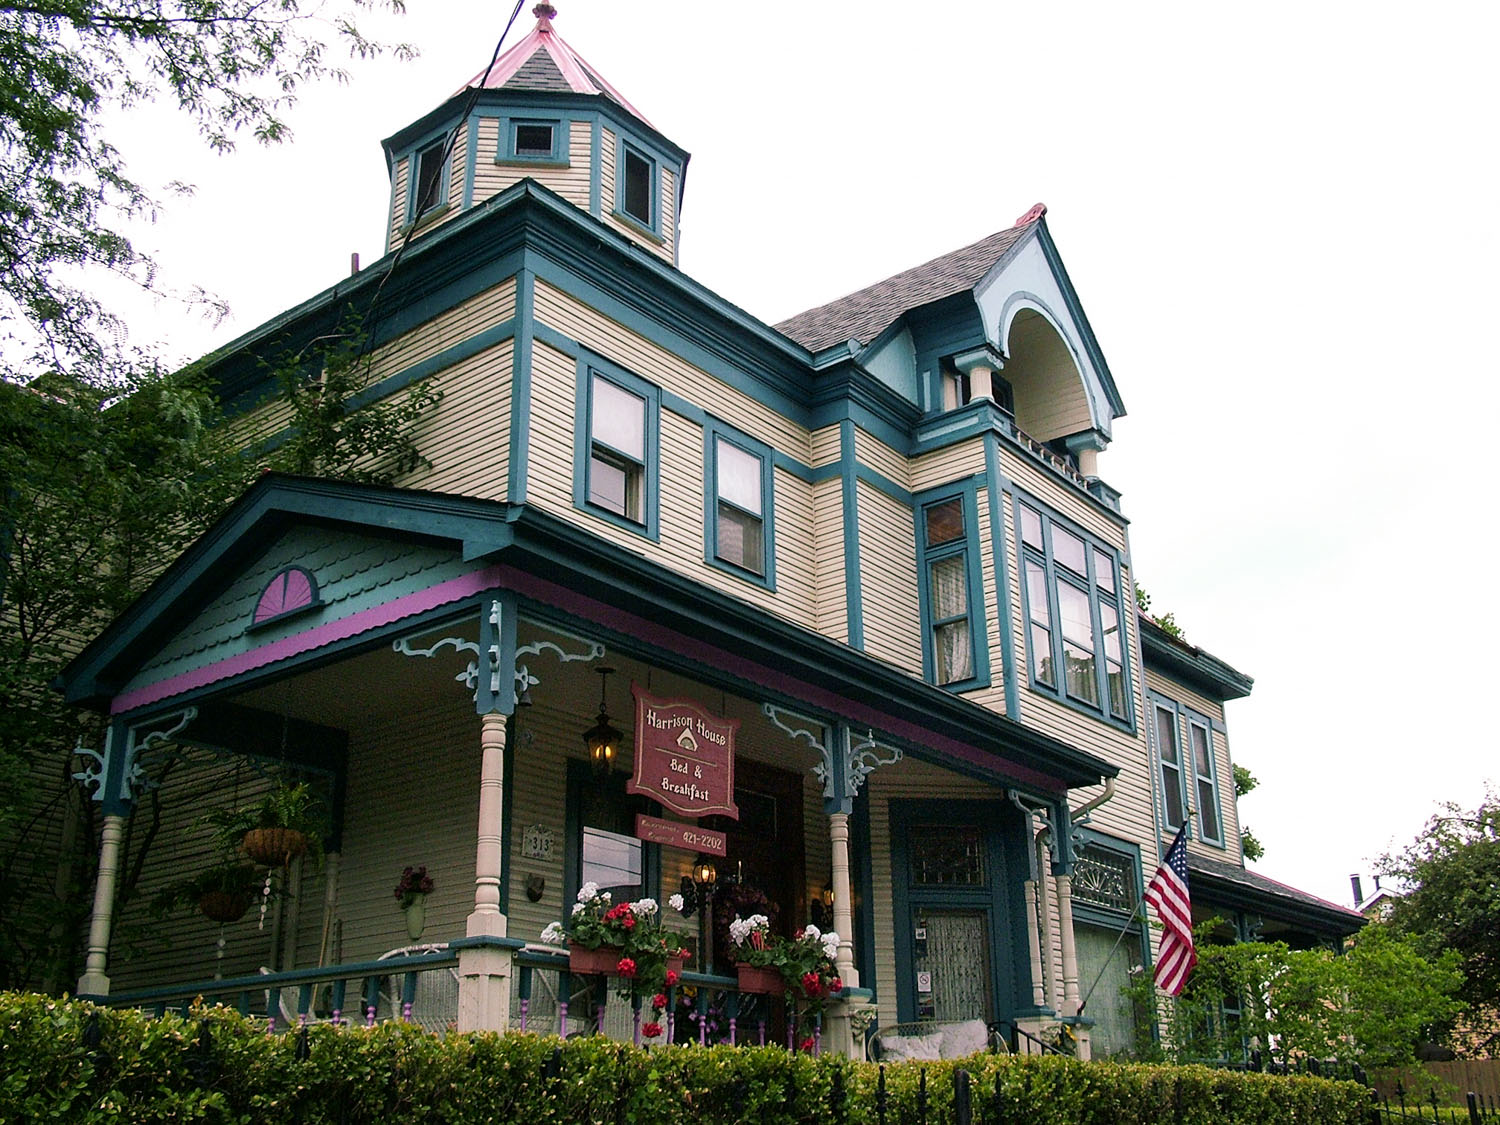 Harrison-House-Bed-and-Breakfast-Columbus-Ohio-Home-2